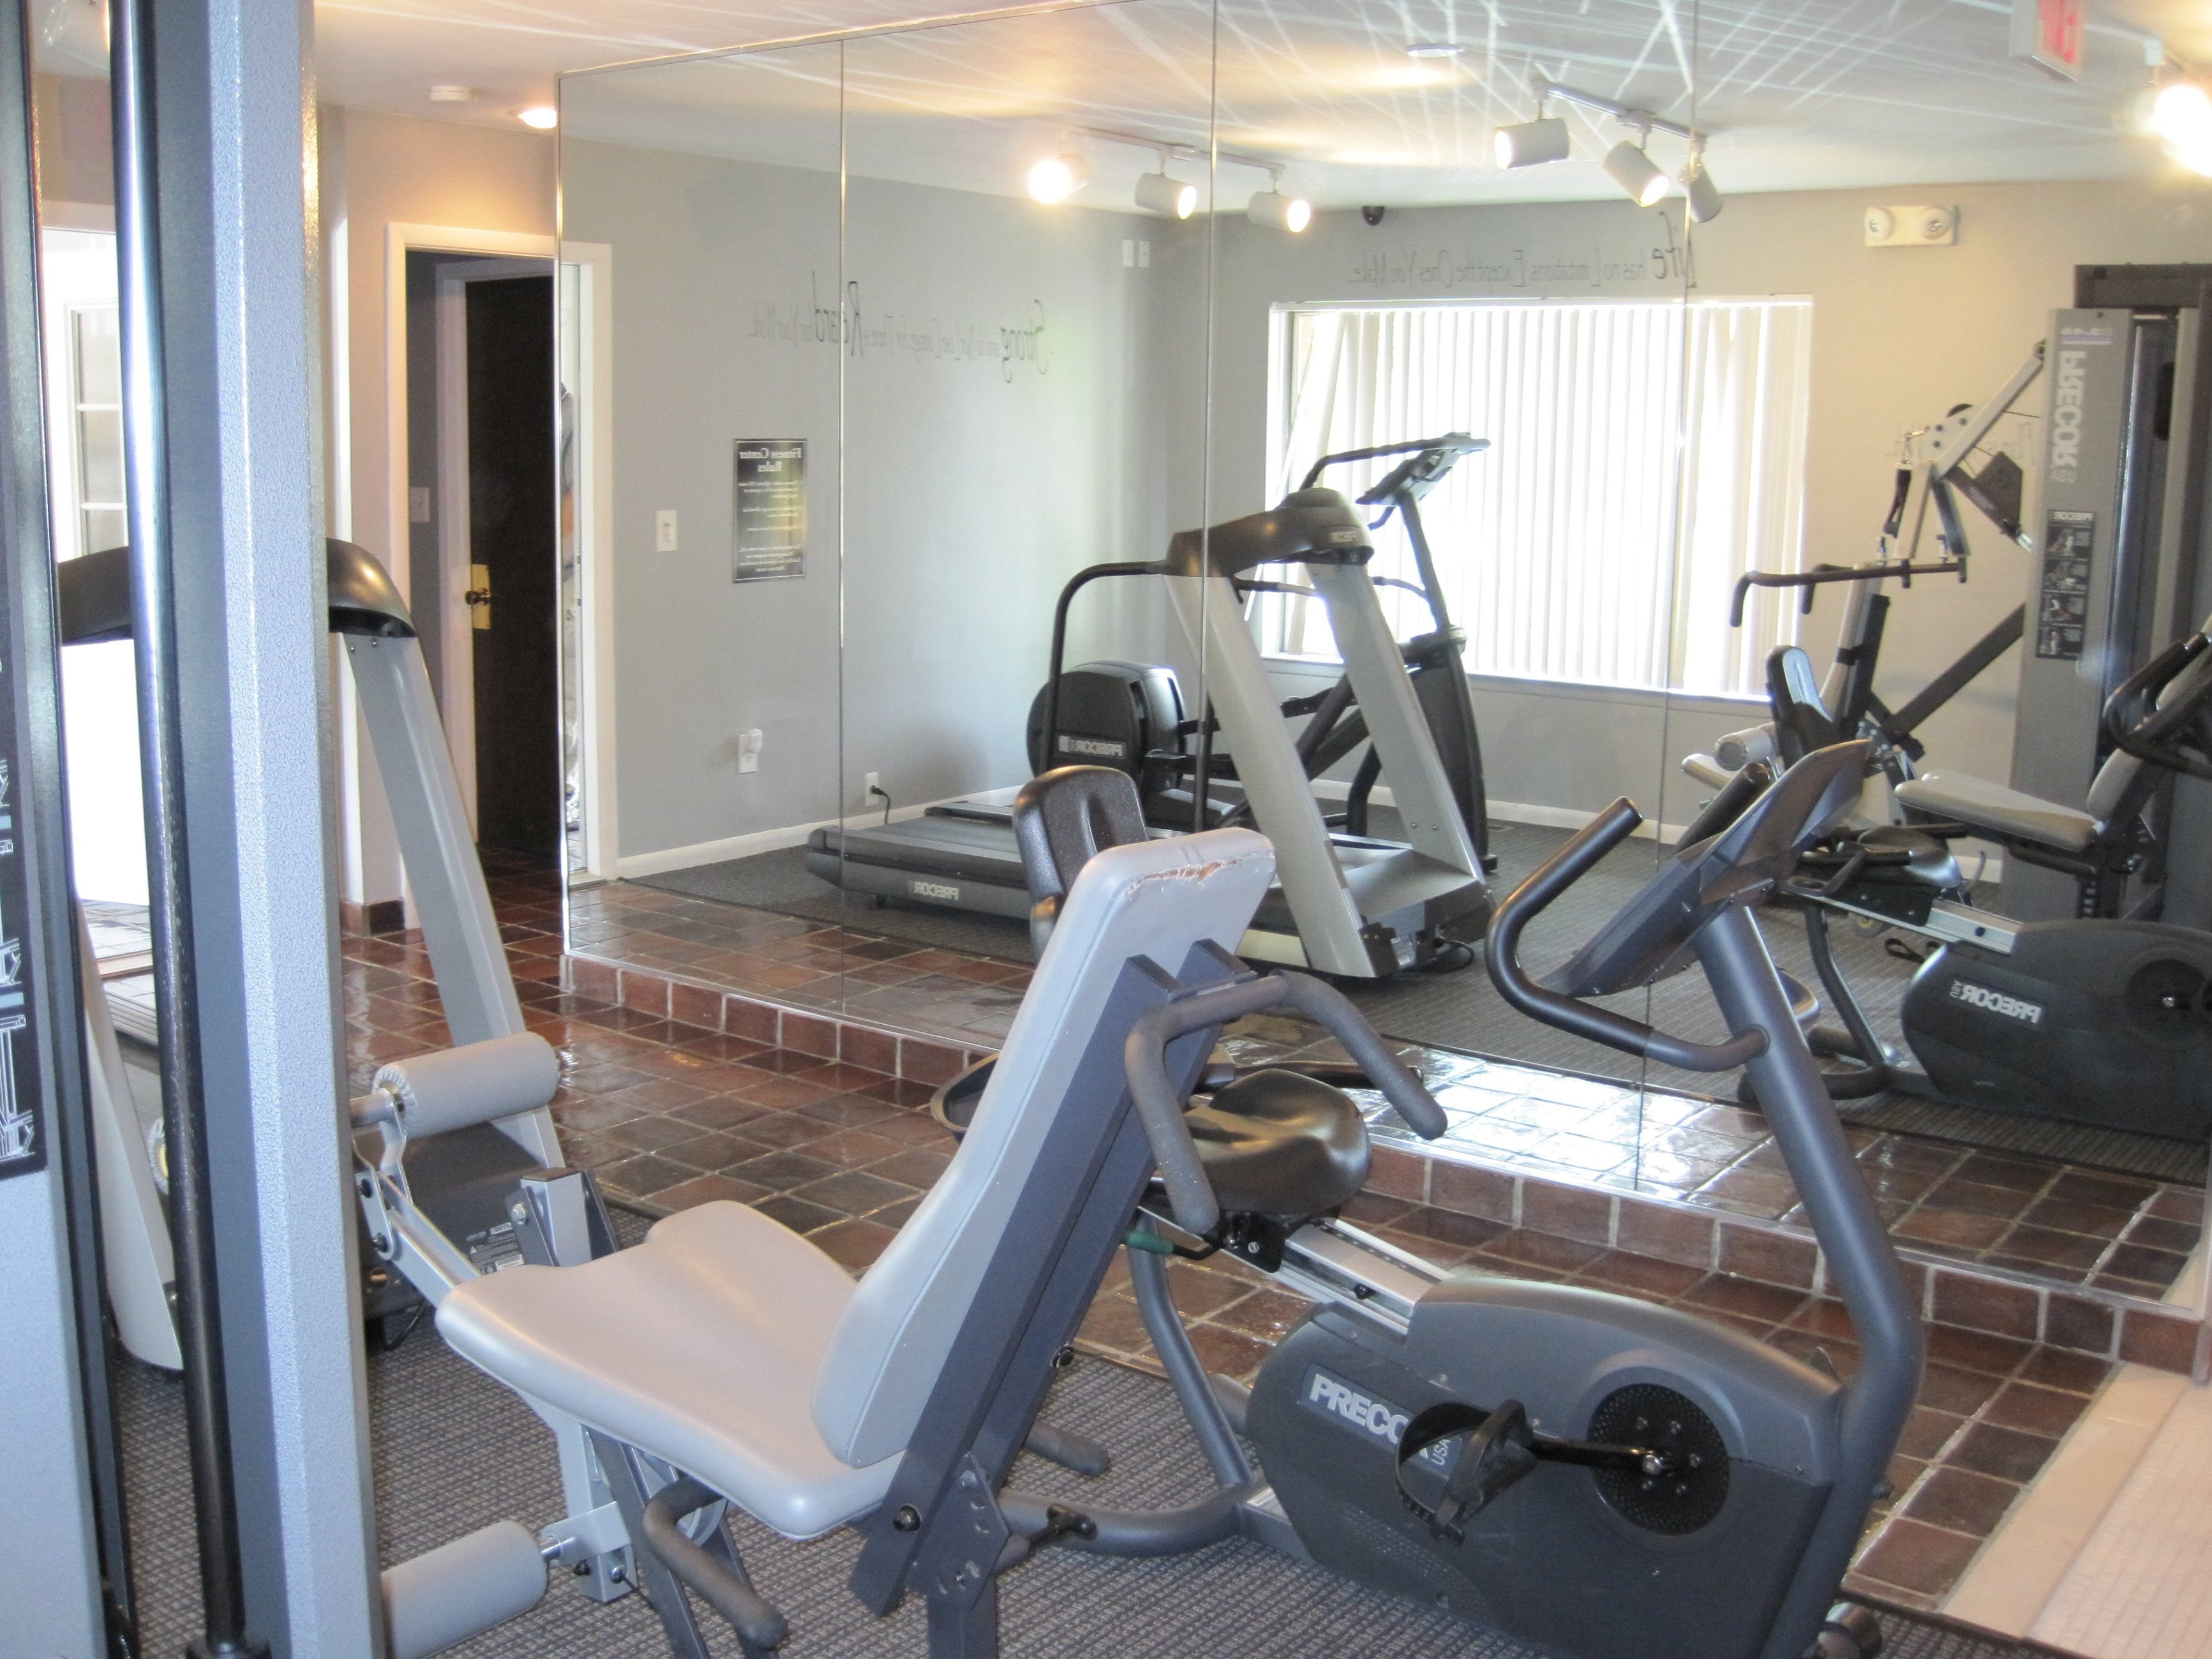 Cardio Equiptment at Knottingham Apartments 23128 Wellington Crescent